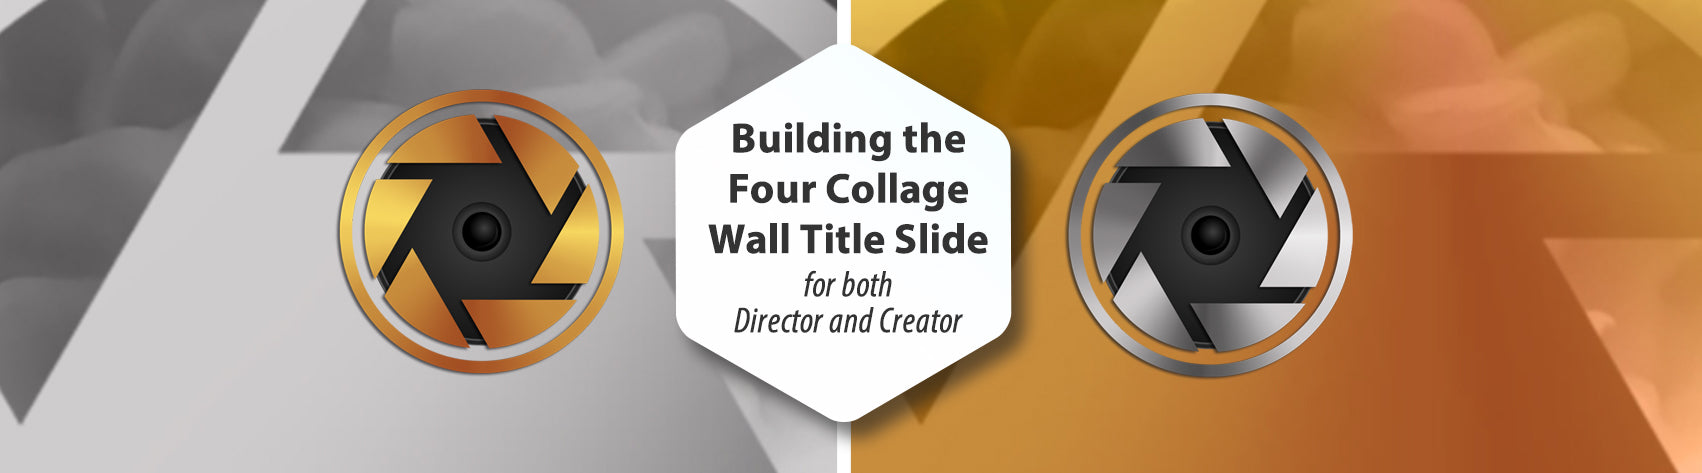 Building the Four Collage Wall Title Slide